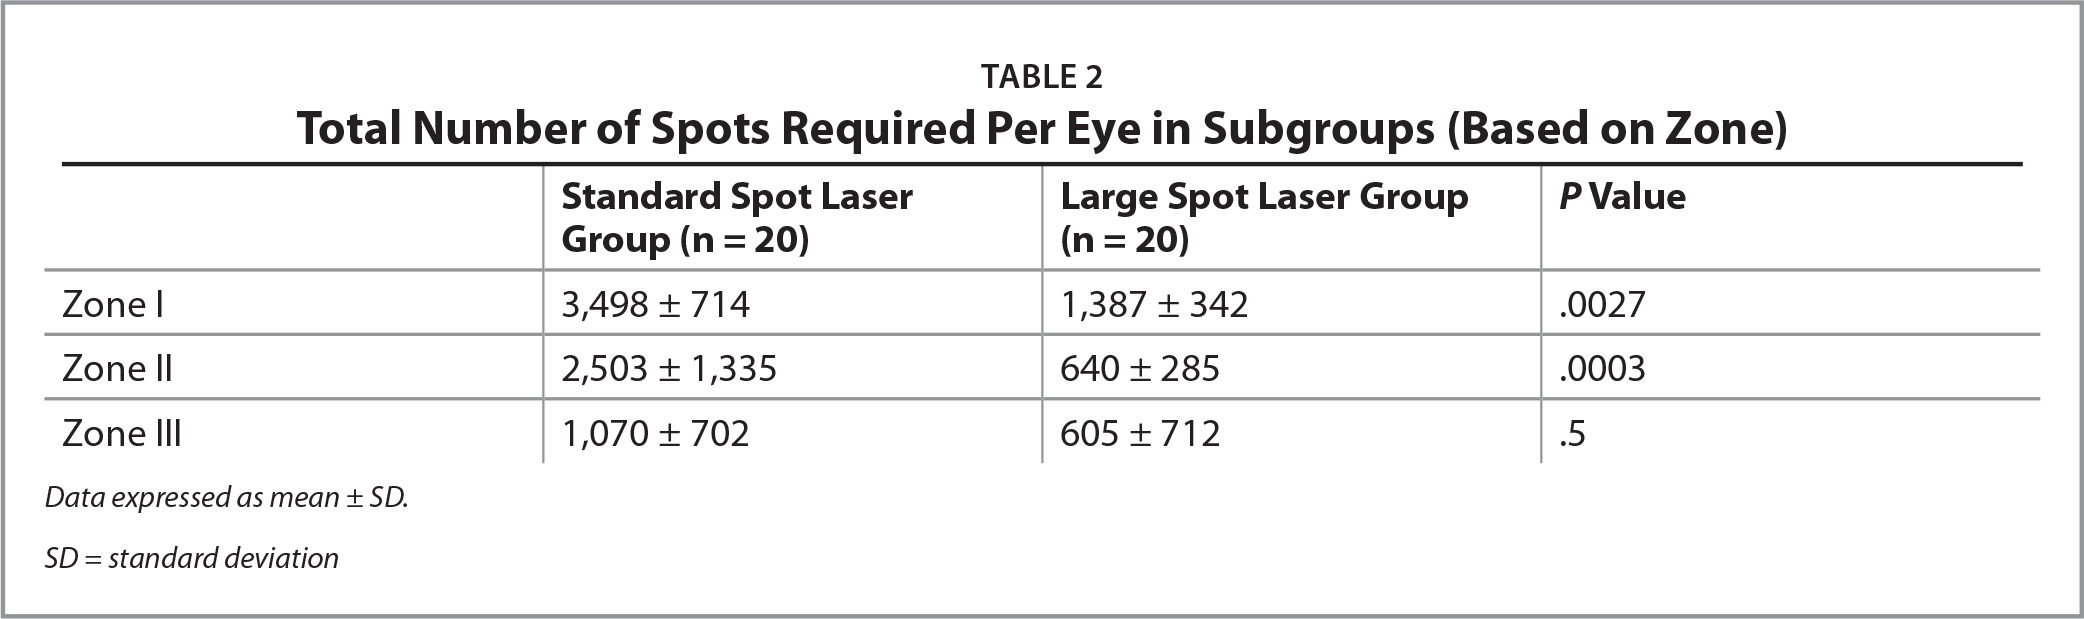 Total Number of Spots Required Per Eye in Subgroups (Based on Zone)